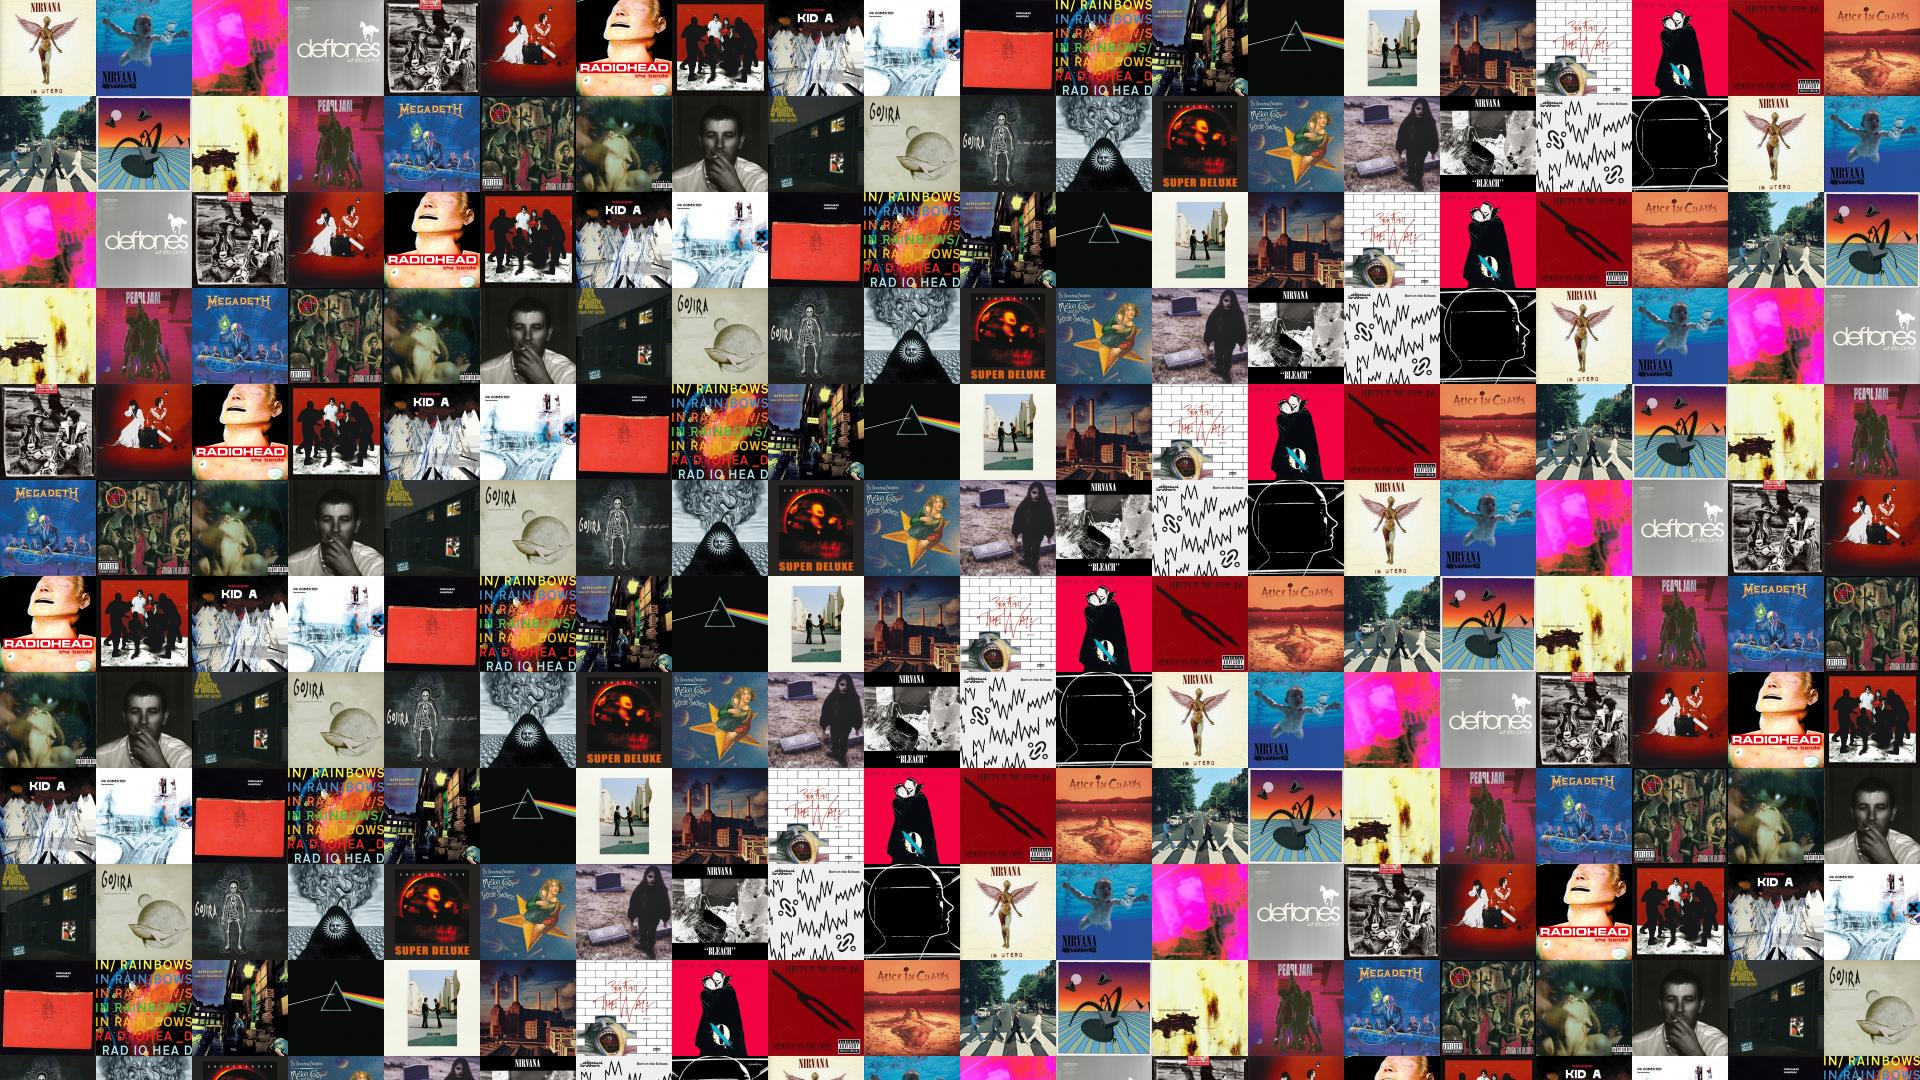 Rise And Fall Of Ziggy Stardust Wallpaper 1920x1080 Nine Inch Nails 171 Tiled Desktop Wallpaper